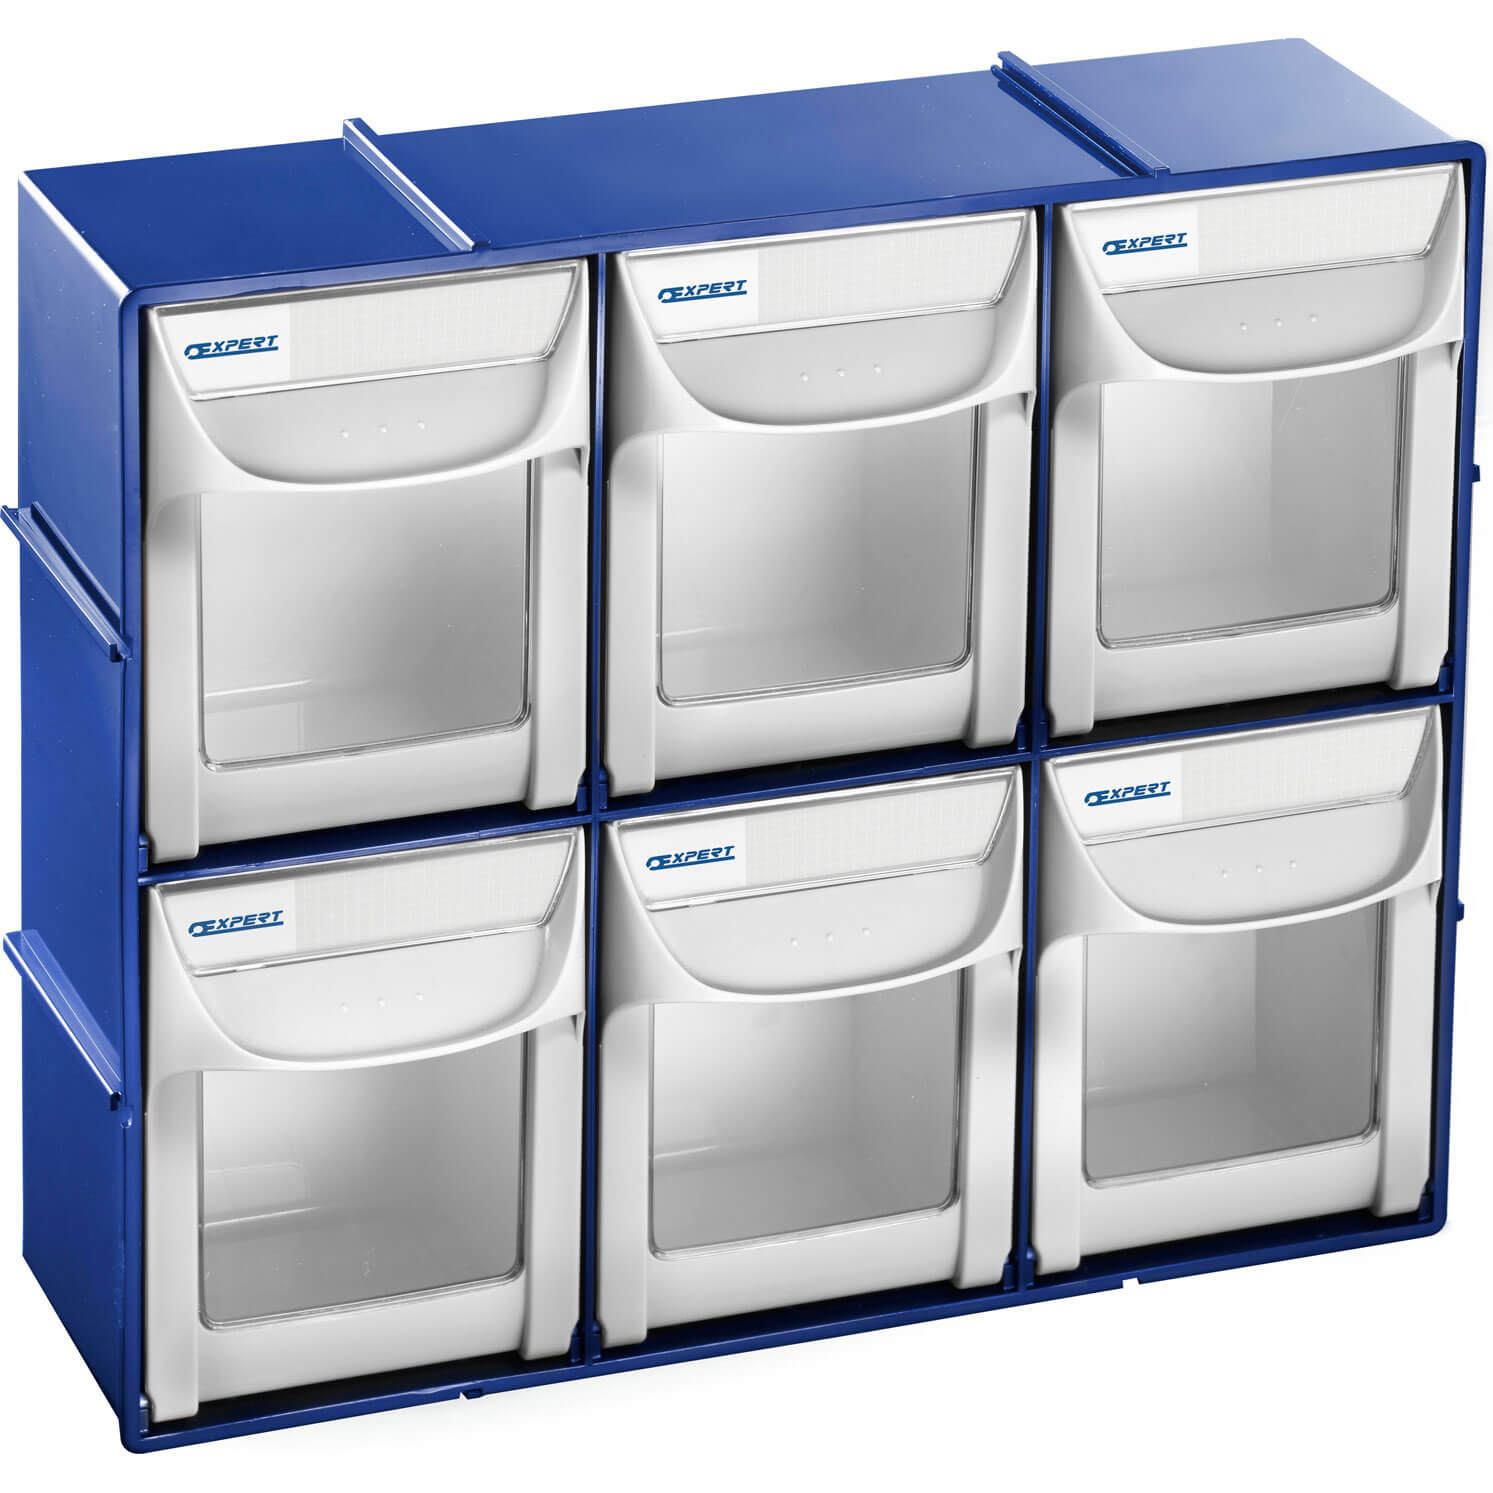 Britool Expert Quick Tip Out Storage Bins for Walls & Work Tops